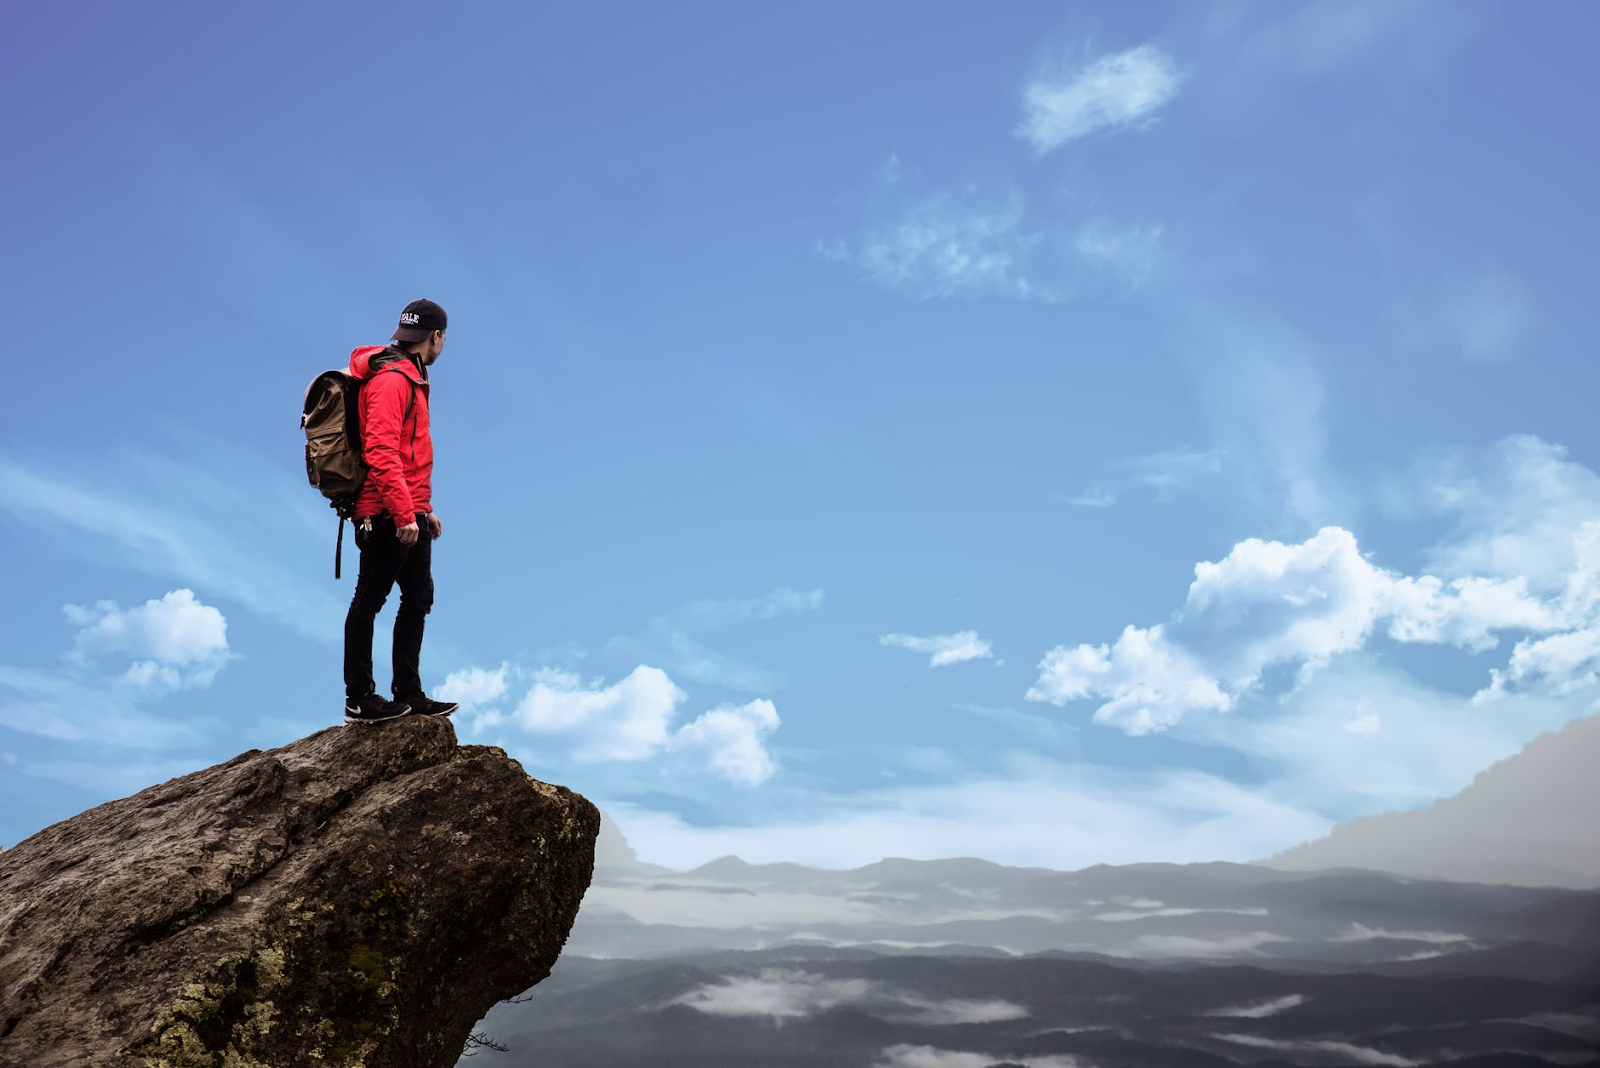 Man stood on the edge of a rock with the sky in the background